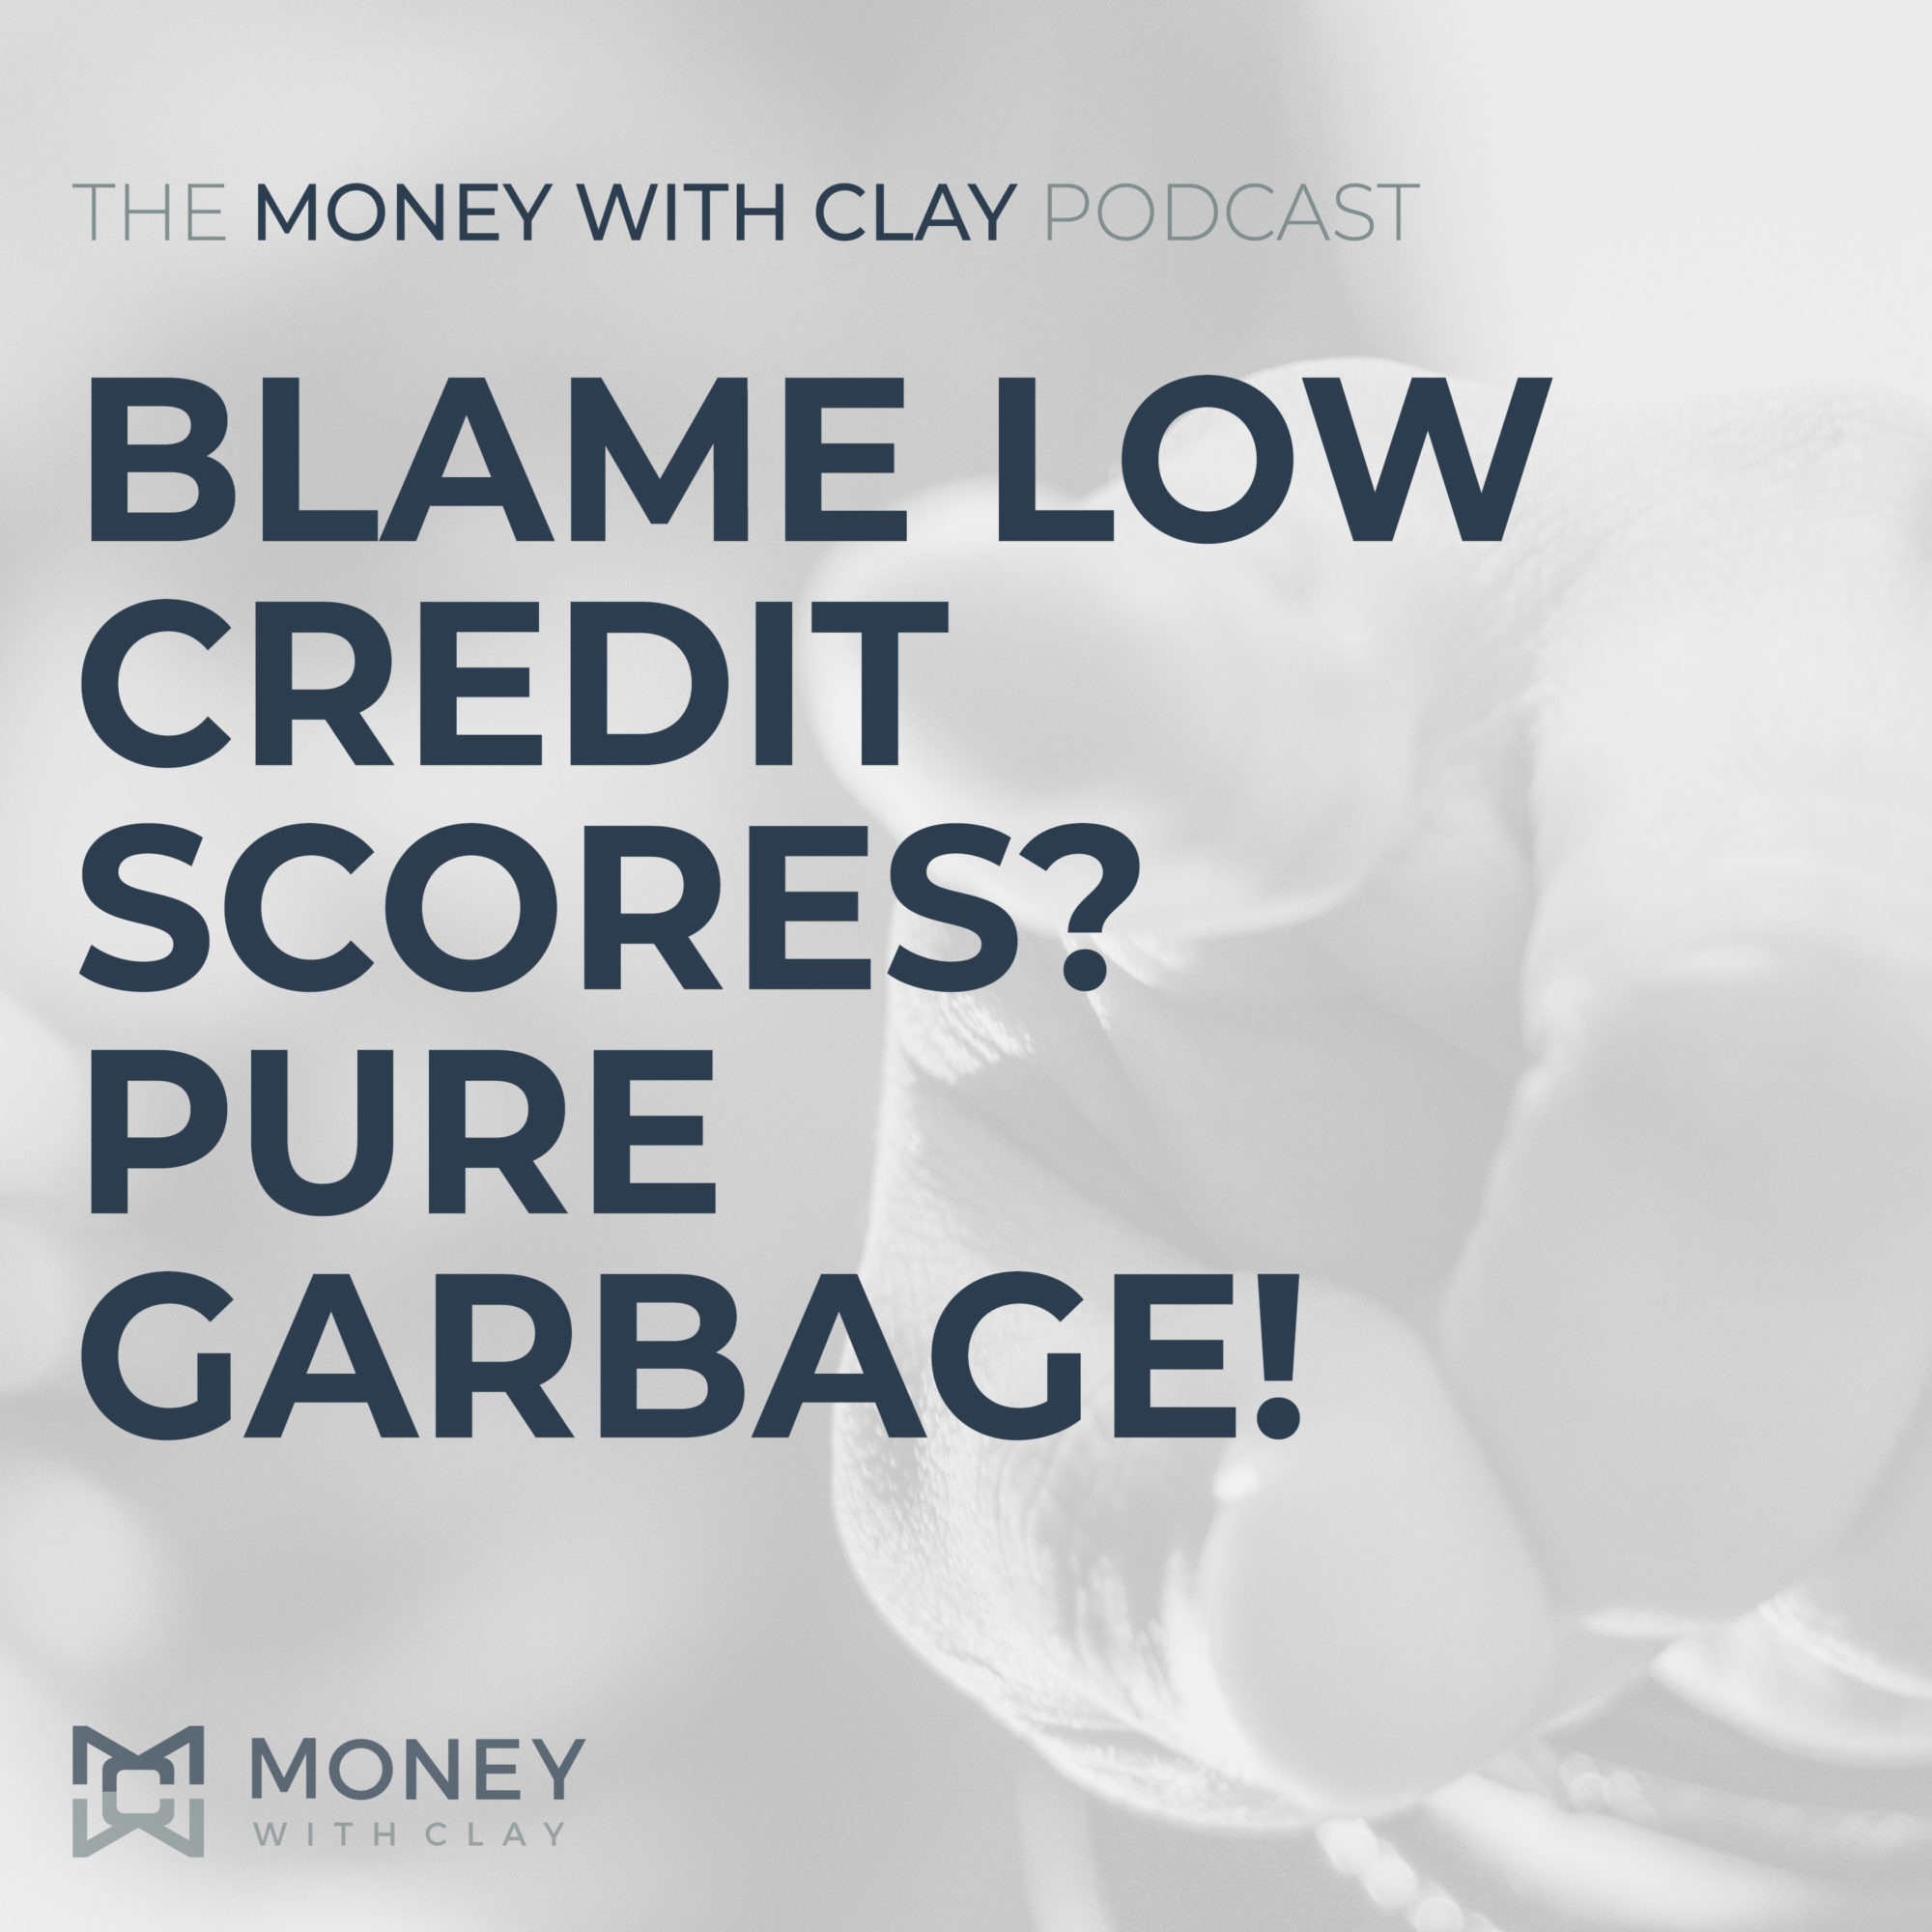 #069 - Blame Low Credit Scores? Pure Garbage!